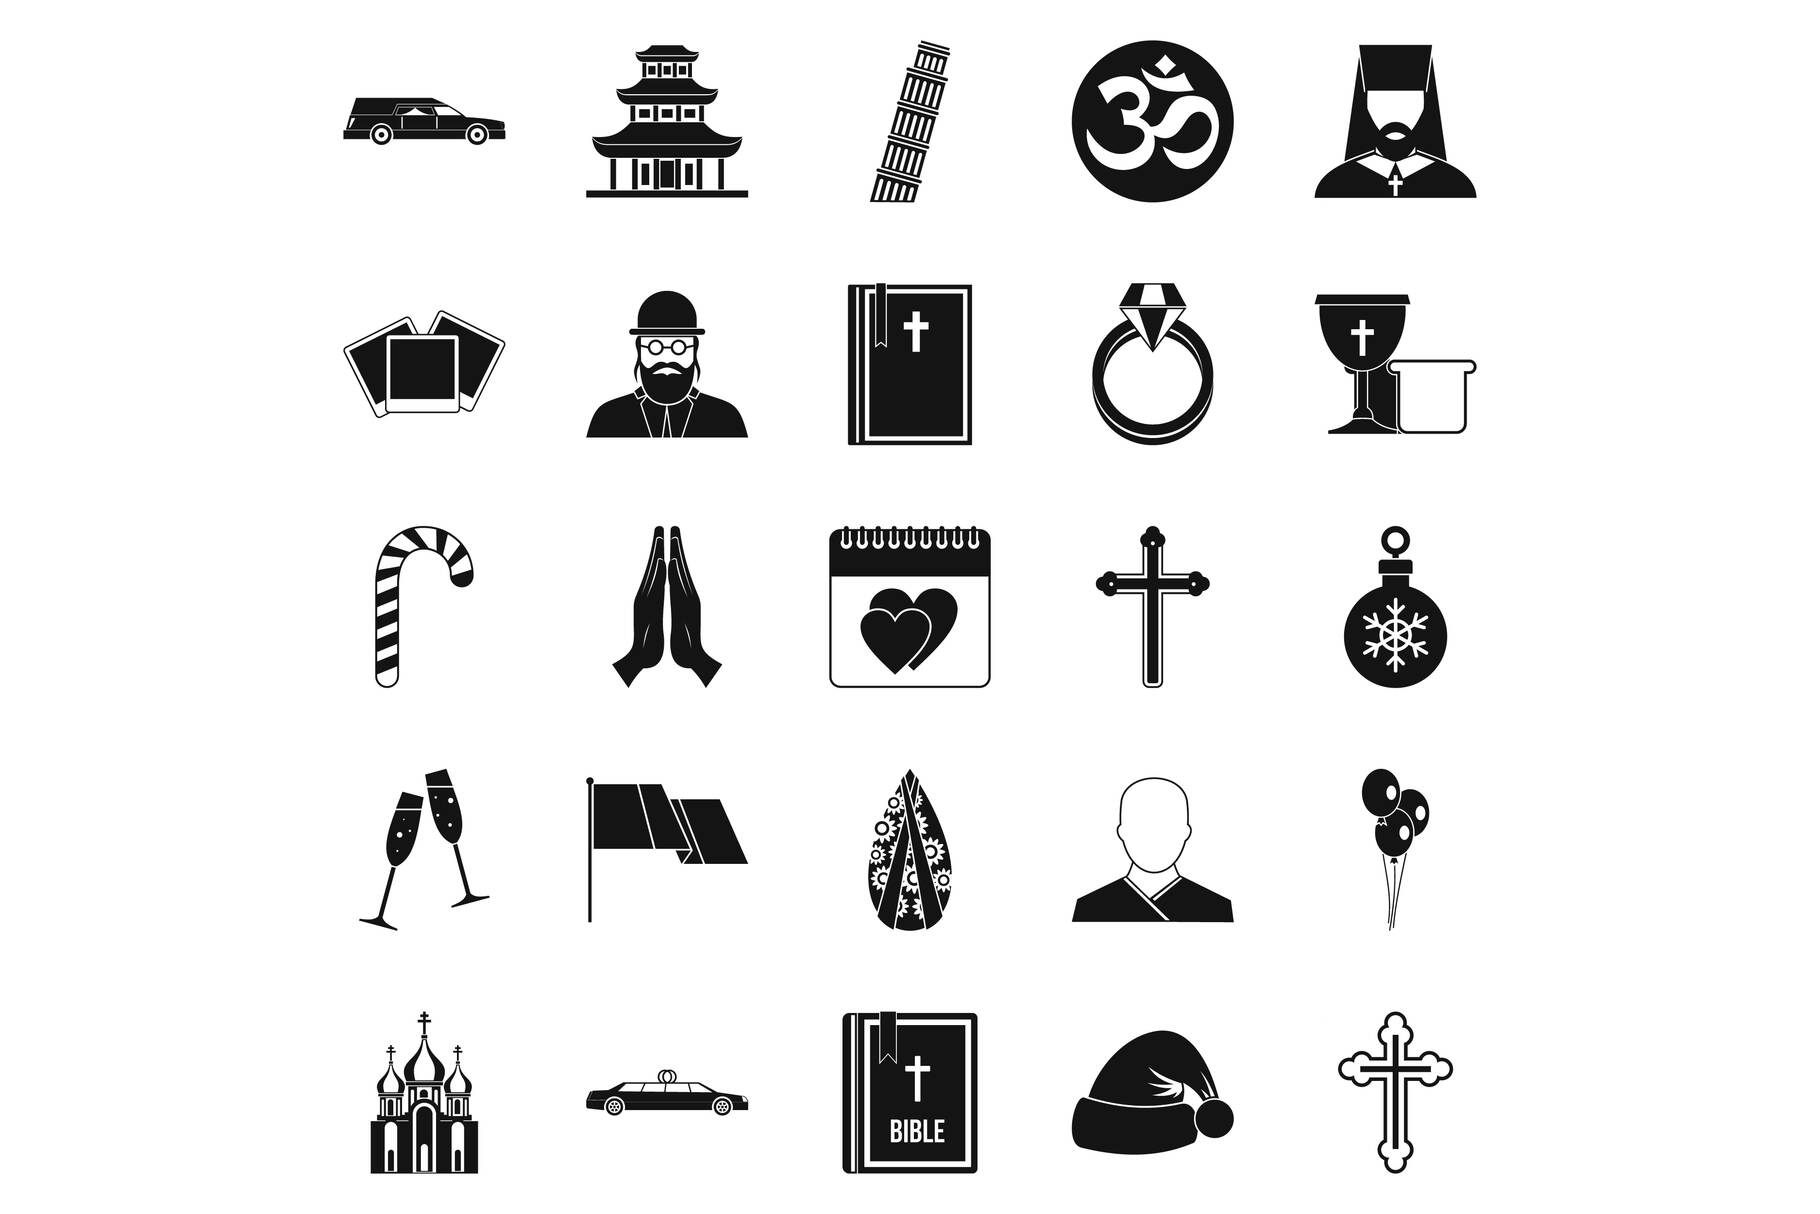 Kirk icons set, simple style example image 1